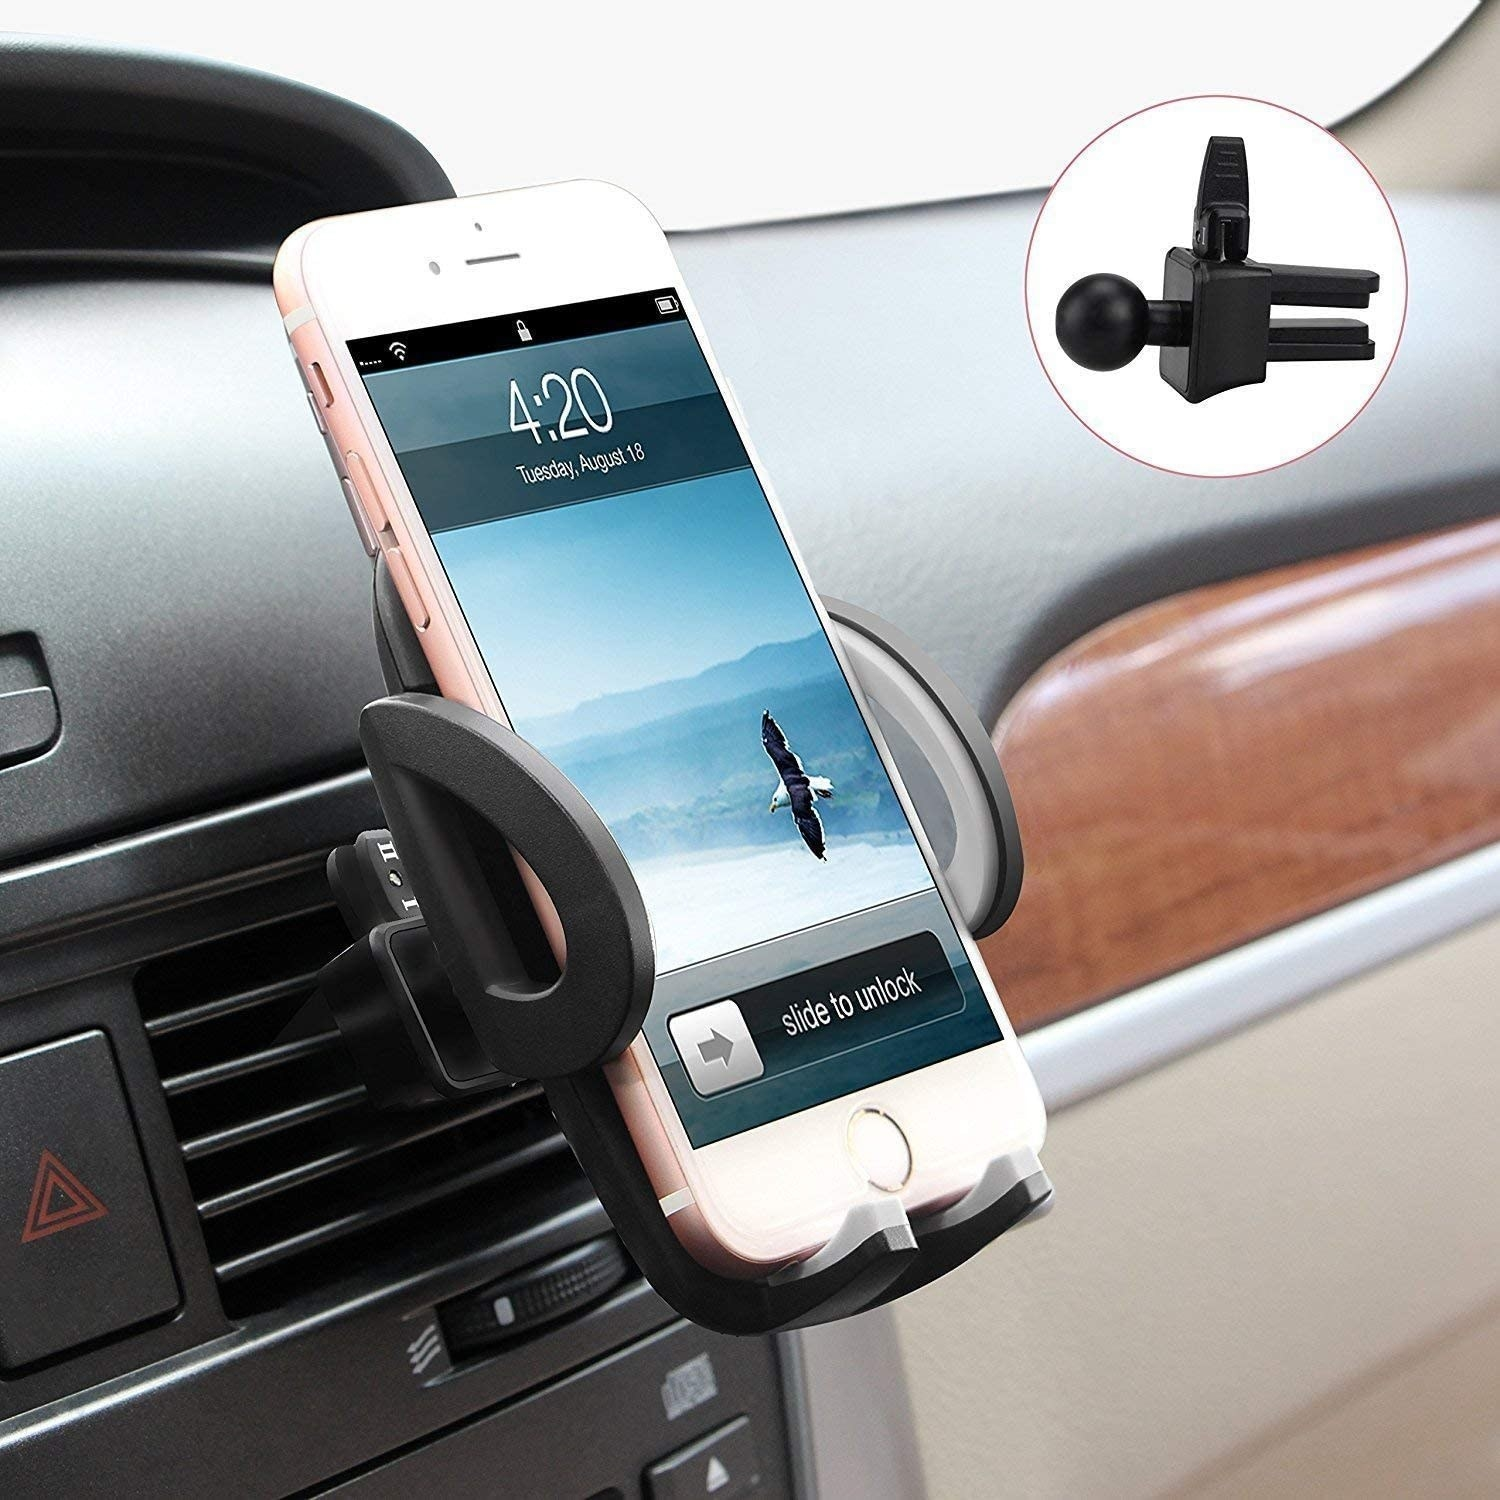 An iPhone  secured in the phone mount